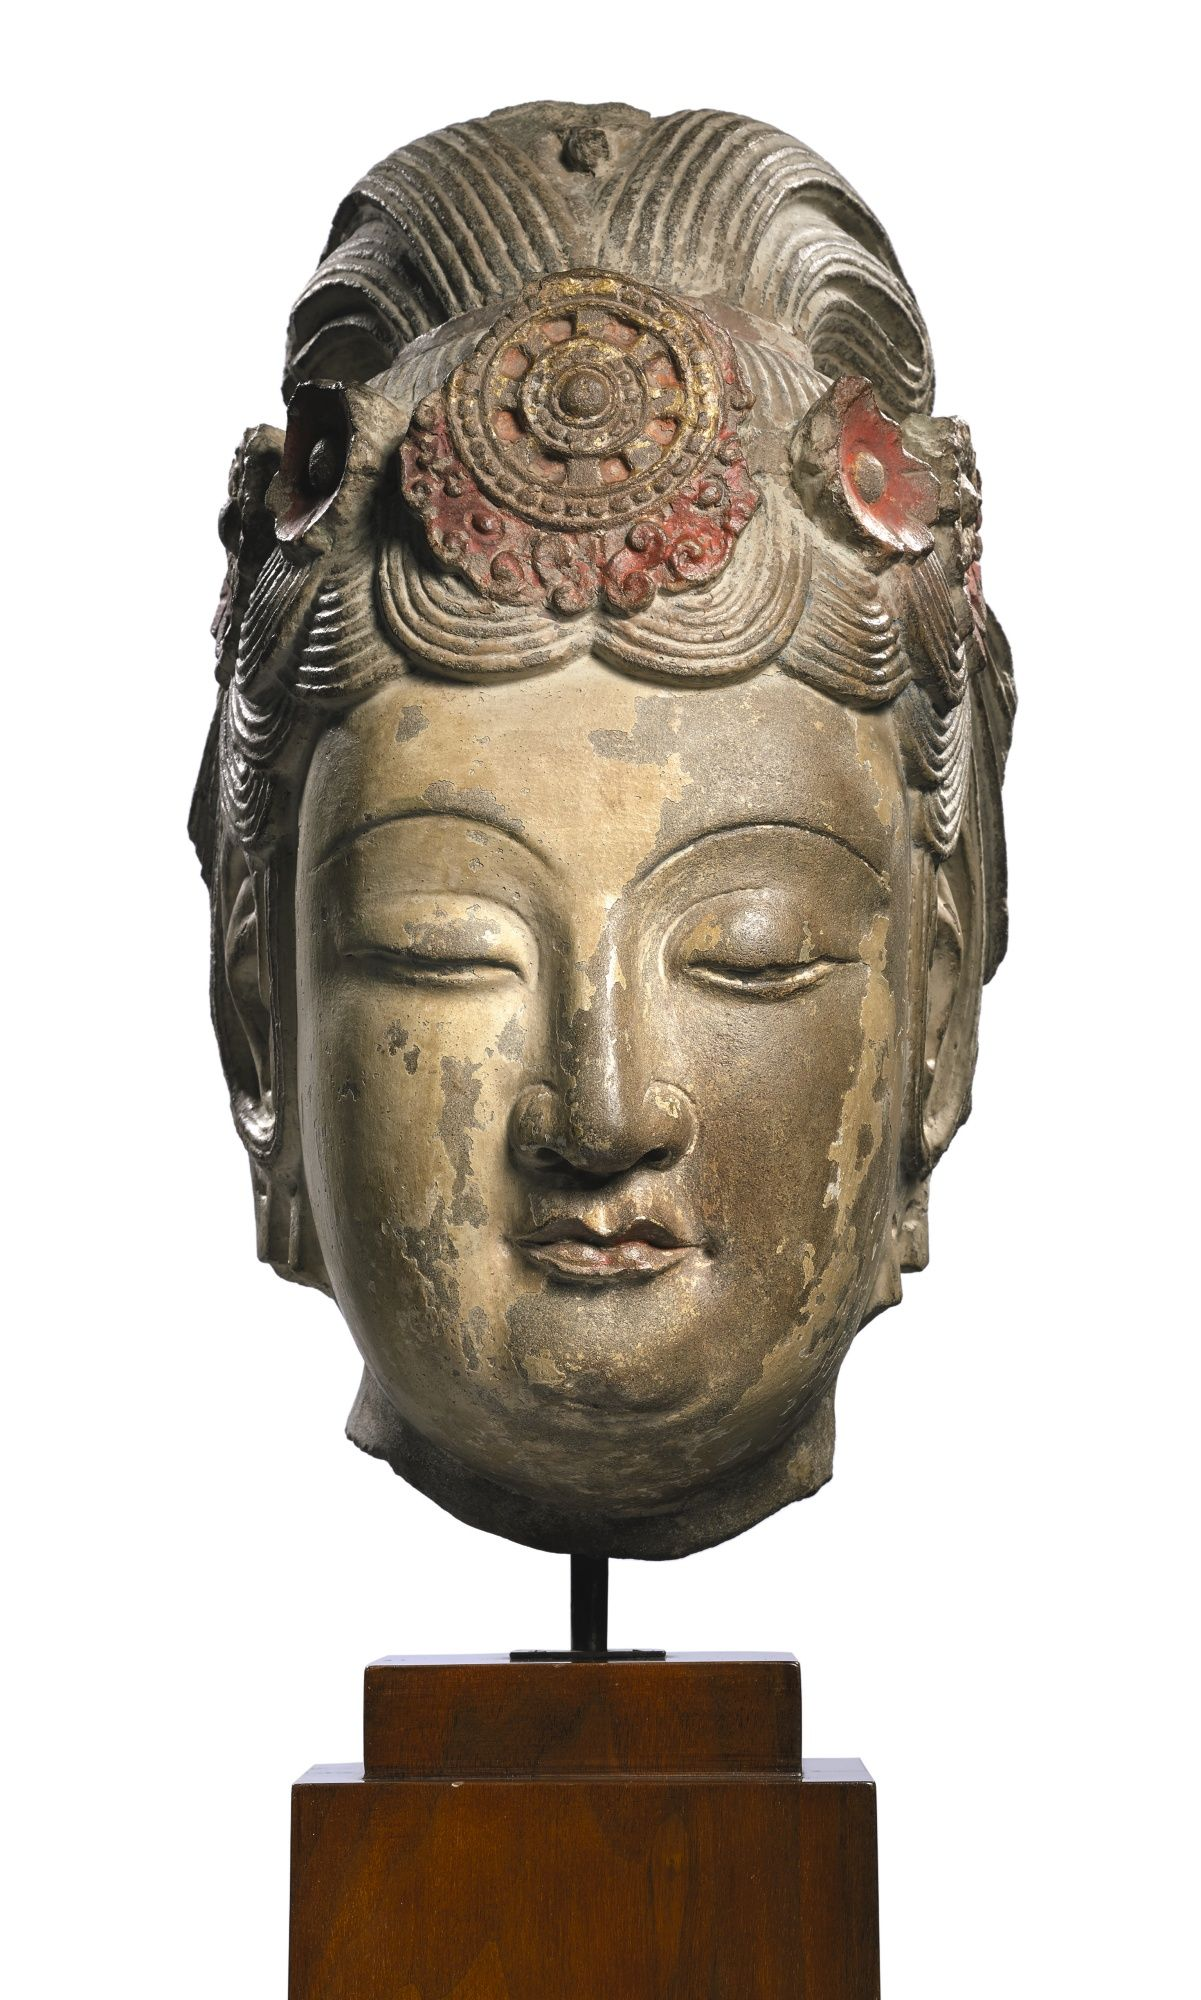 Extremely rare large limestone head of a bodhisattva sui dynasty an extremely rare large limestone head of a bodhisattva sui dynasty biocorpaavc Choice Image